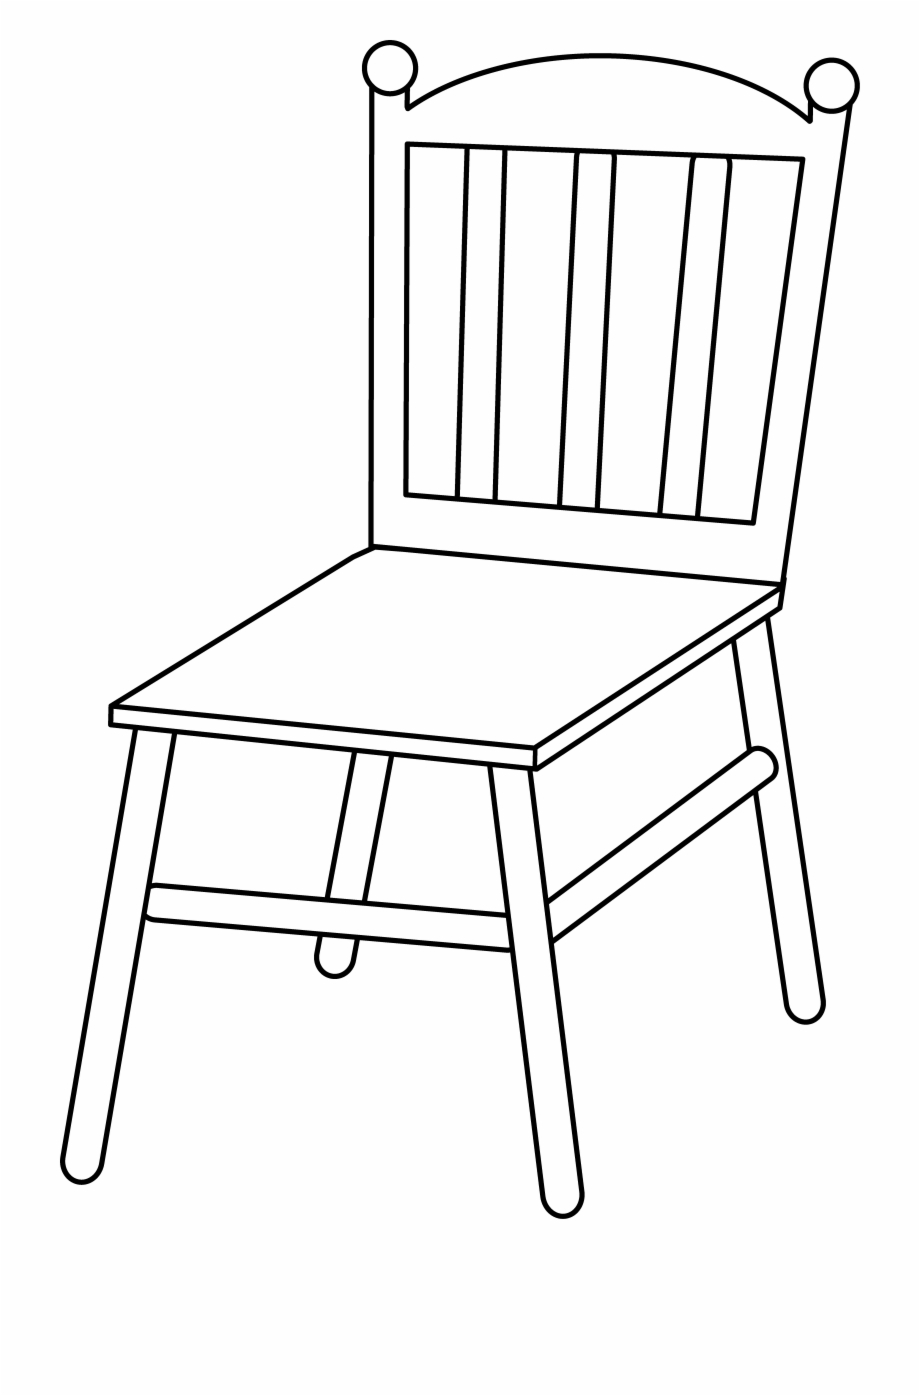 Transparent chair clipart vector royalty free stock Chair Line Art - Transparent Background Chair Clipart Black And ... vector royalty free stock